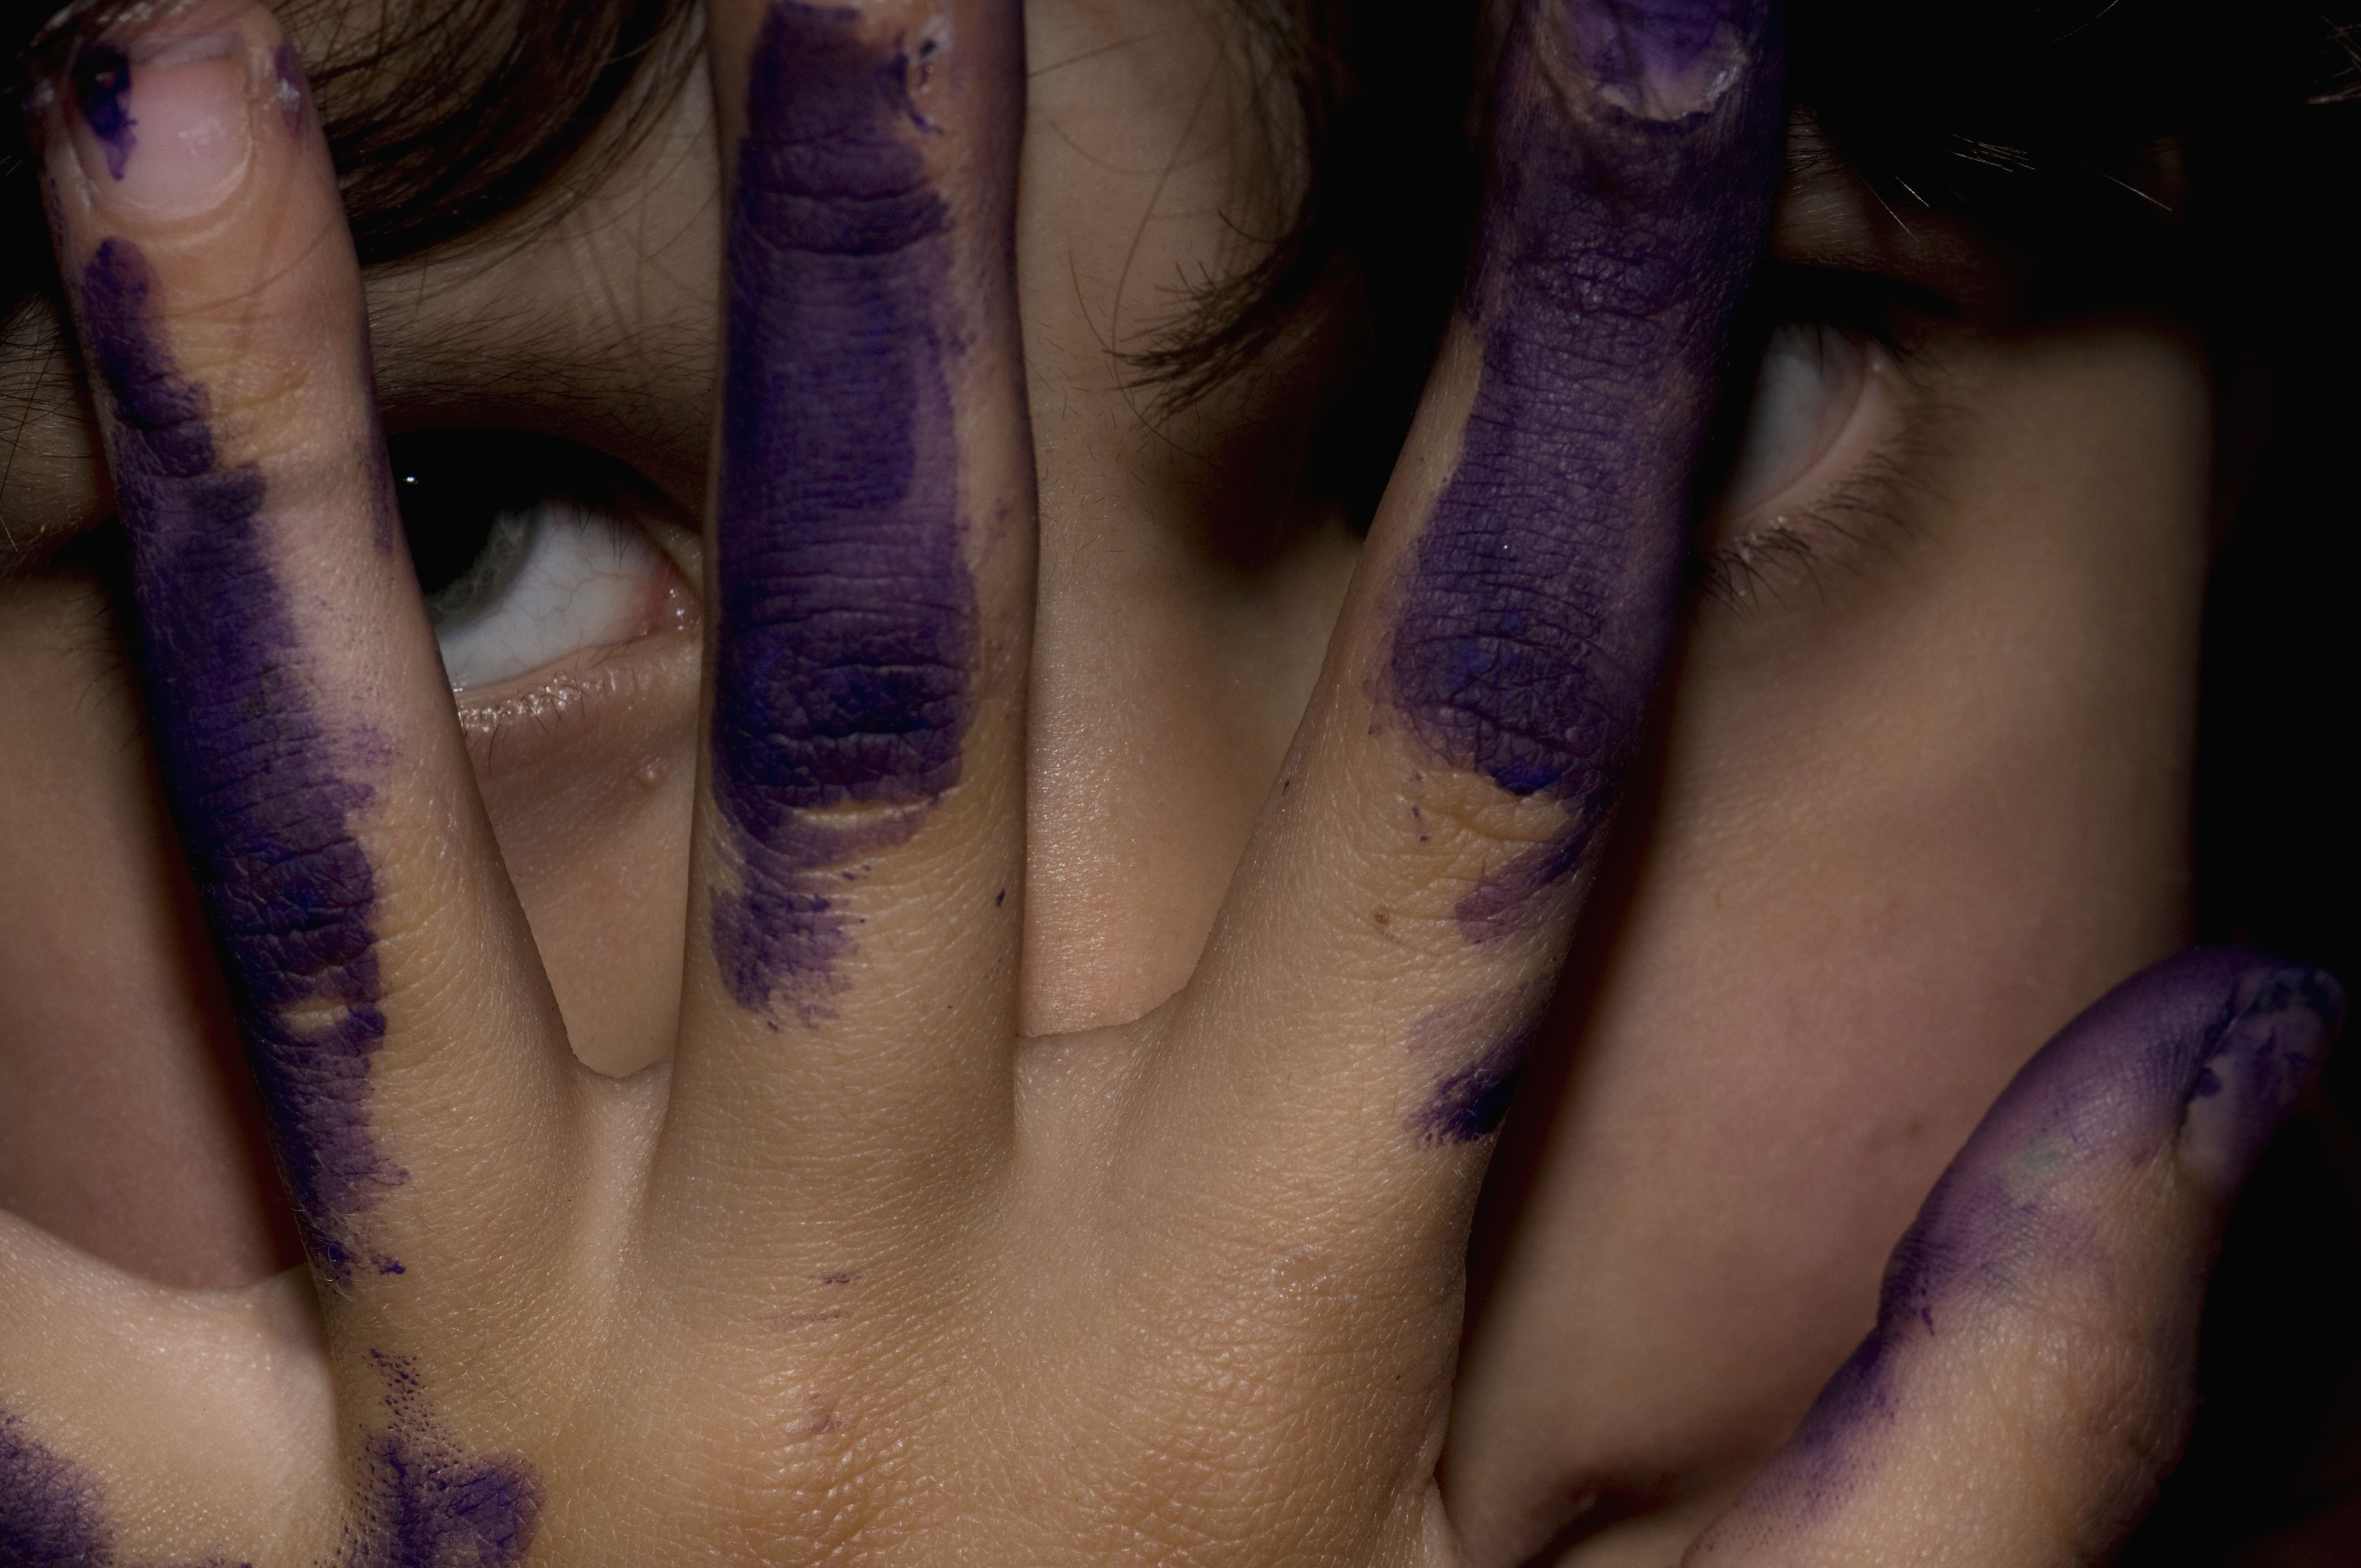 Close-up of girl (10-11) looking through fingers with ink stains